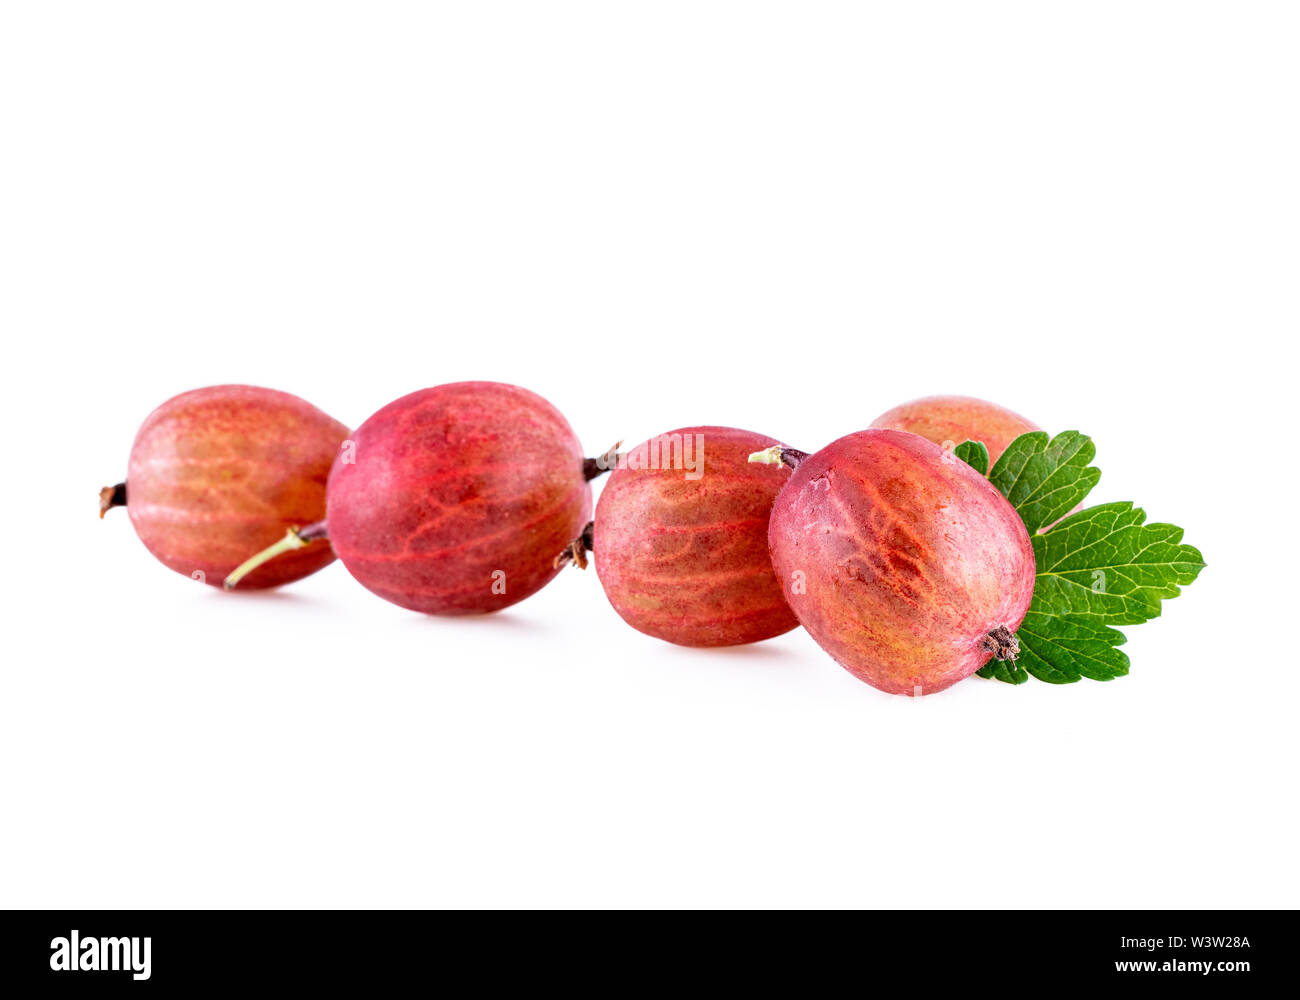 Gooseberries in a row isolated on white - Stock Image